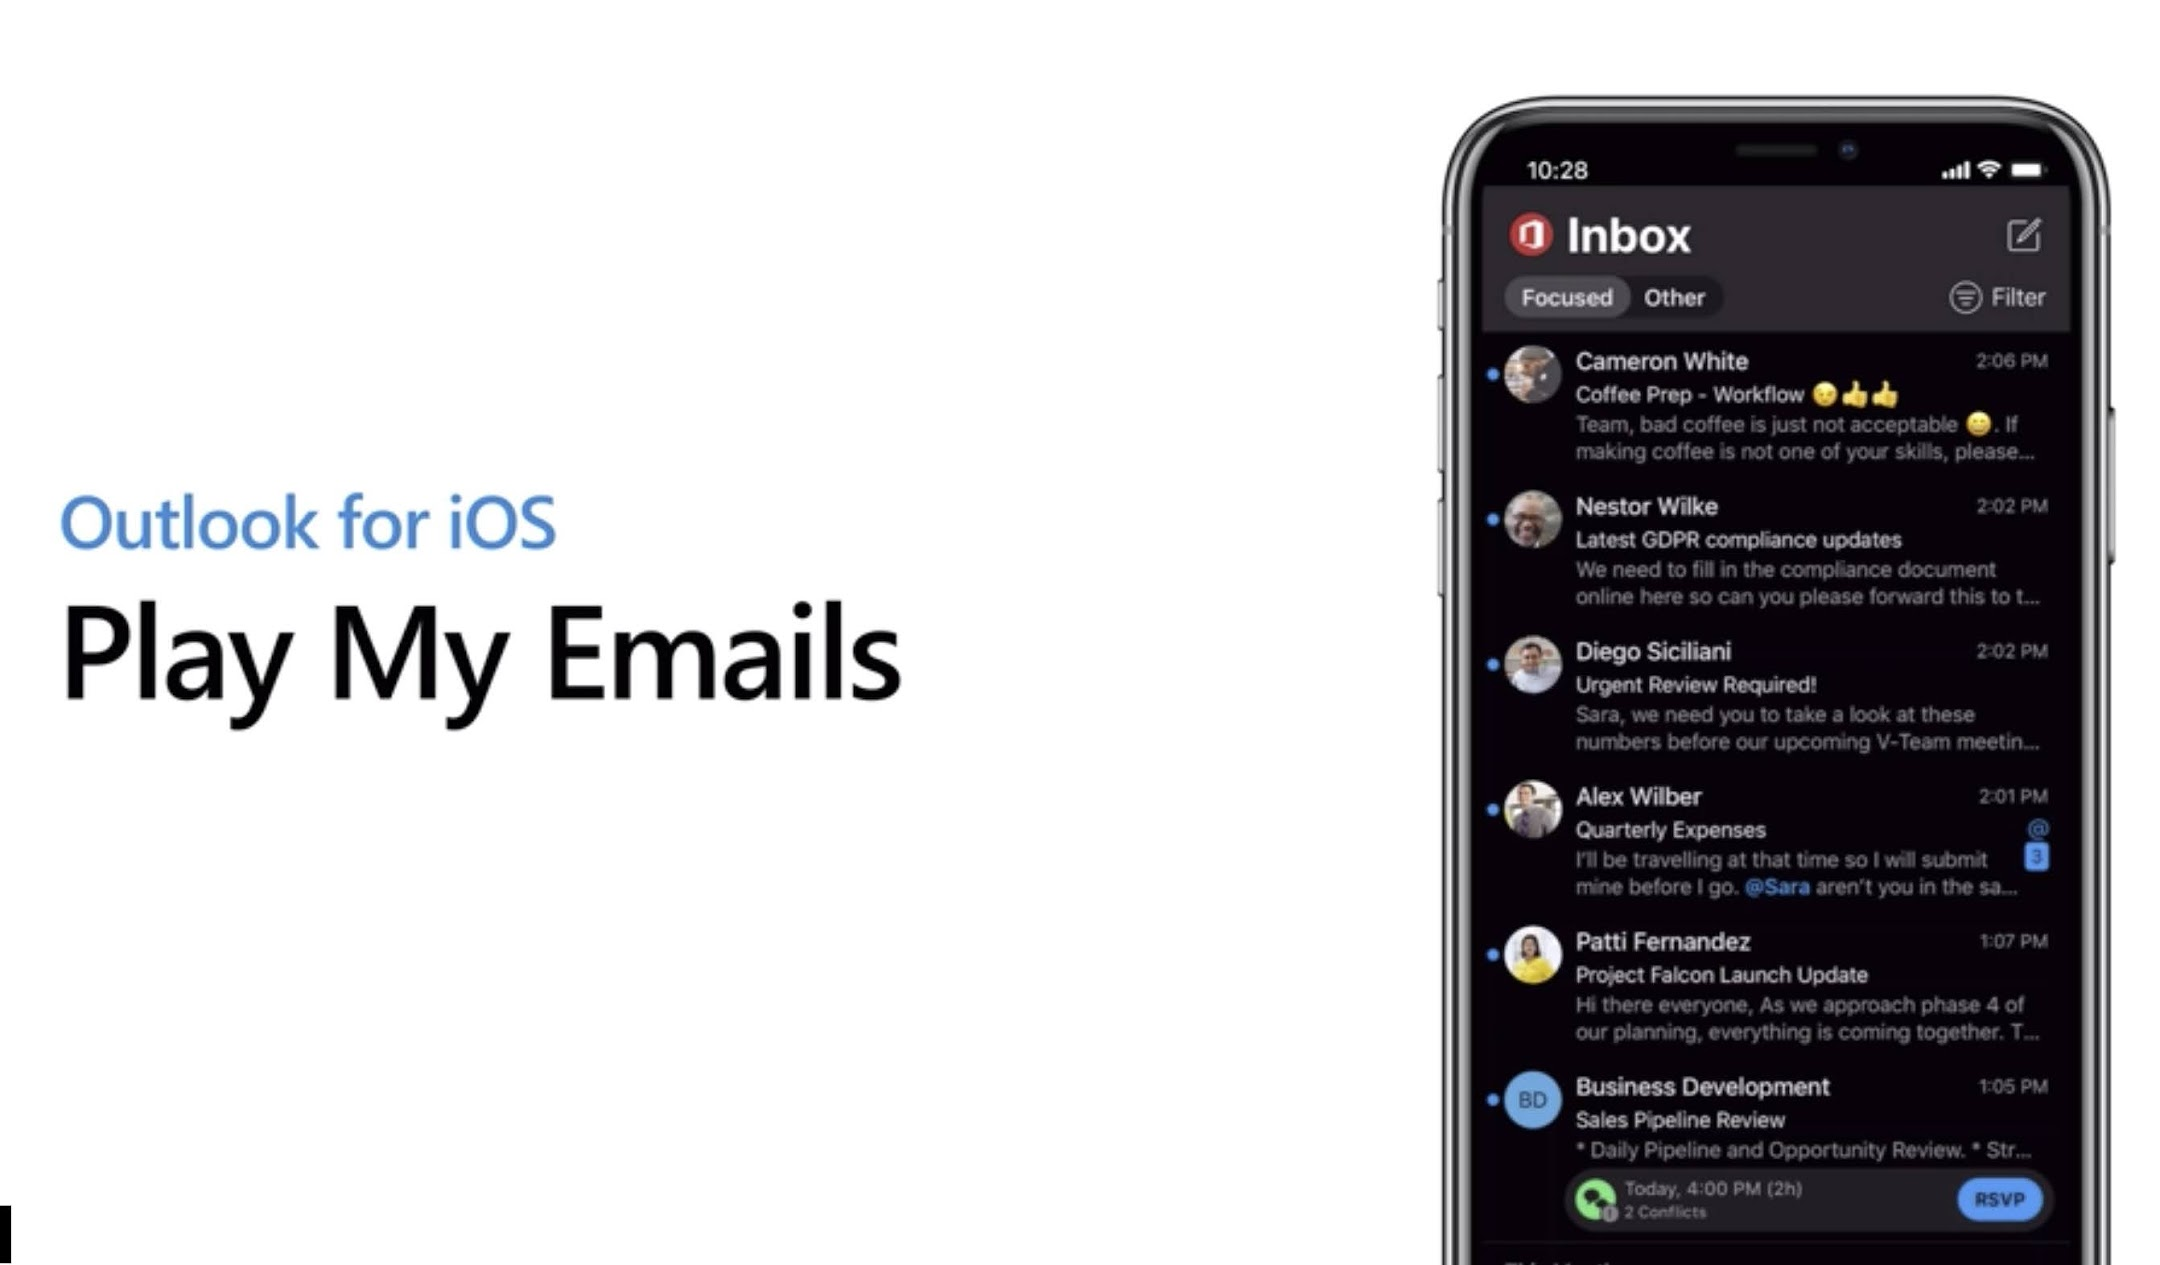 82074: Play My Emails Support Play Conversation with Cortana in Microsoft Outlook for iOS